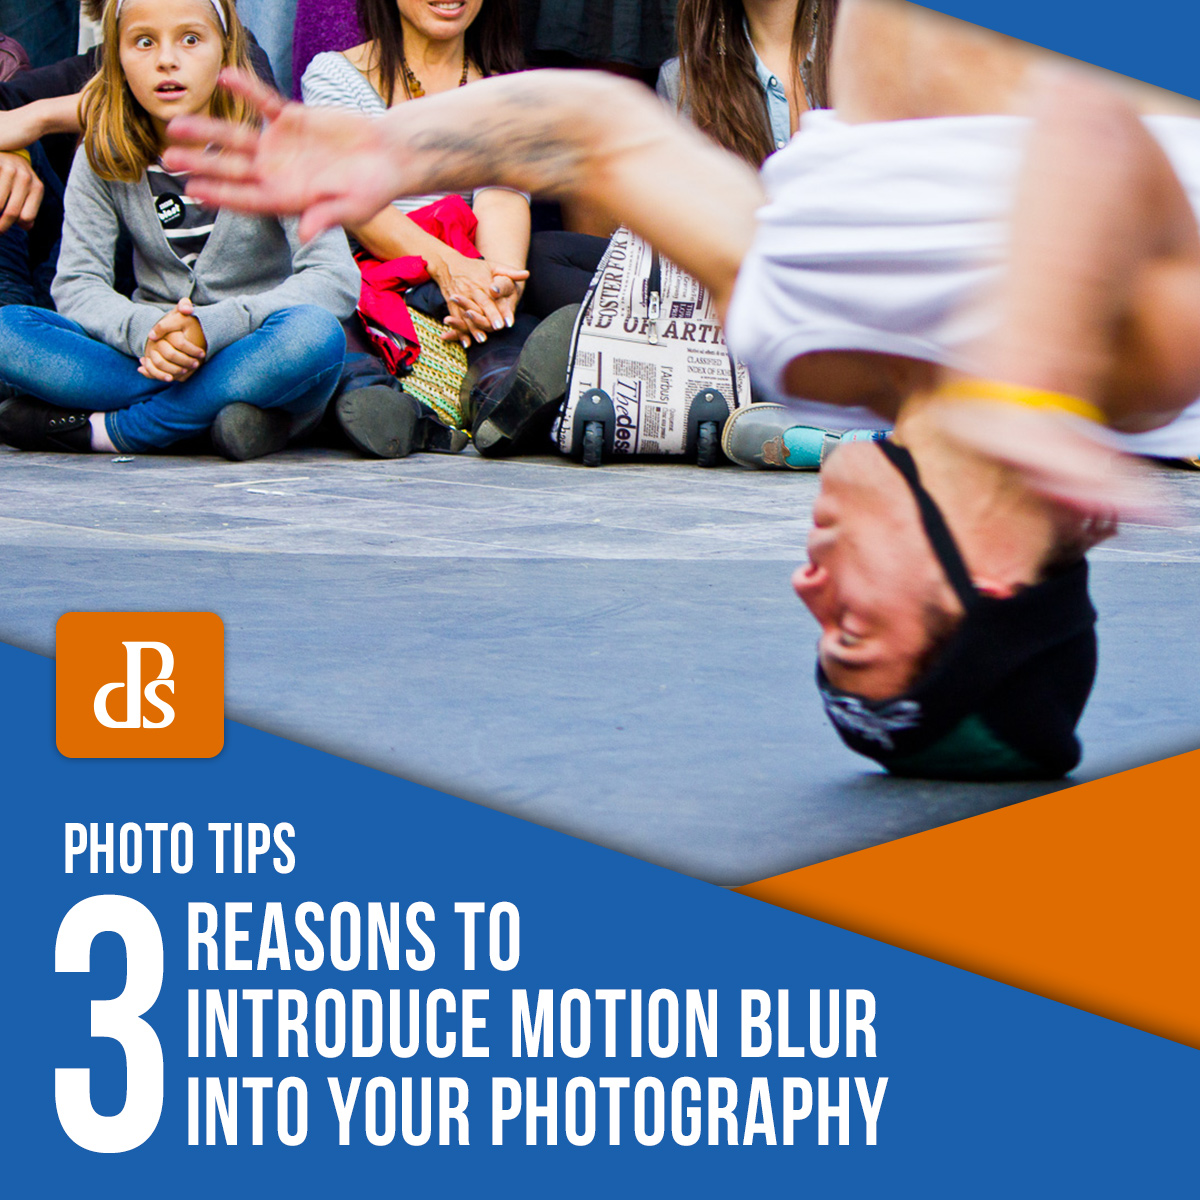 dps-reasons-to-introduce-motion-blur-in-photography